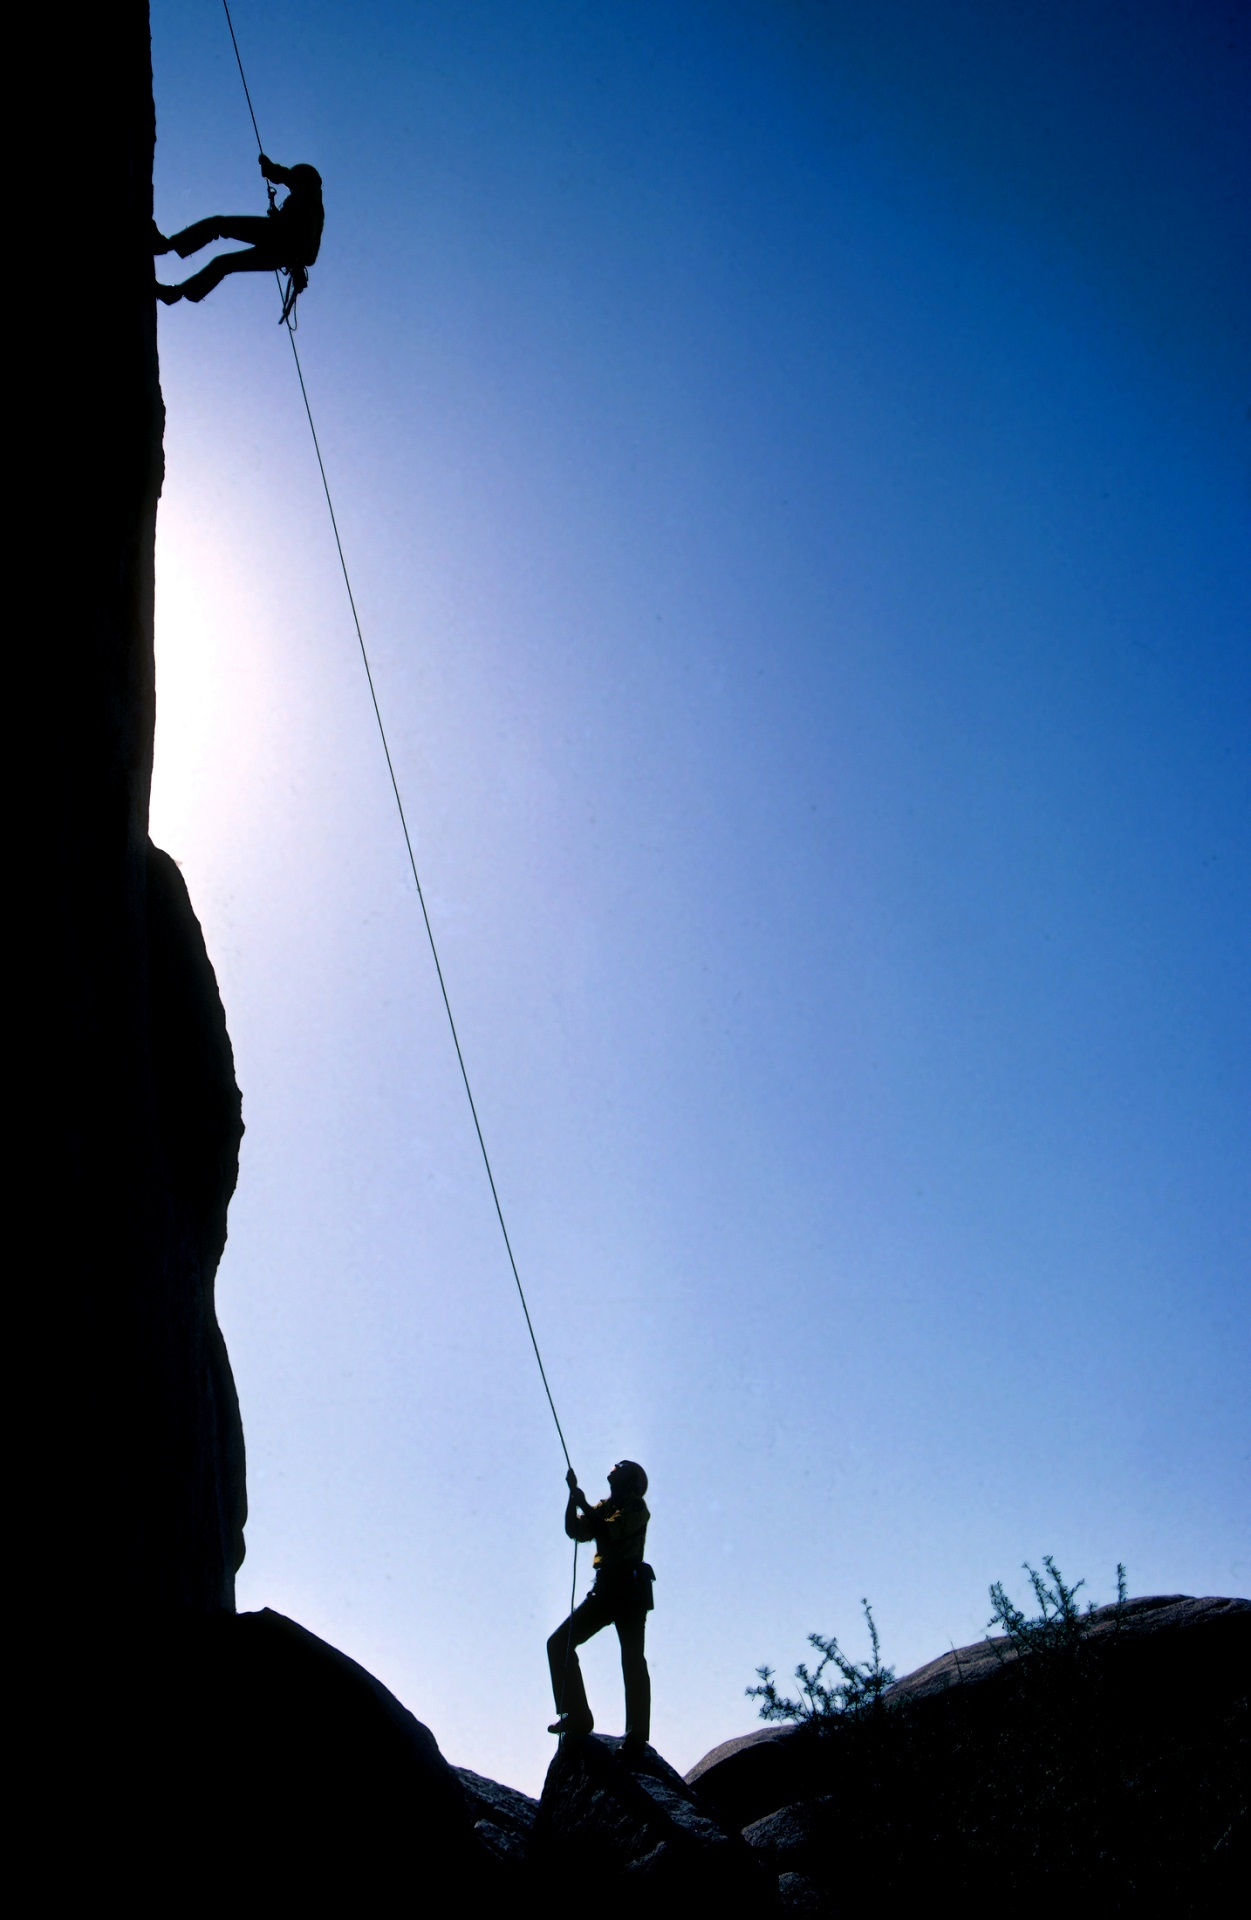 4k Hd Wallpapers For Iphone Free Stock Photo Of Achievement Action Adventure